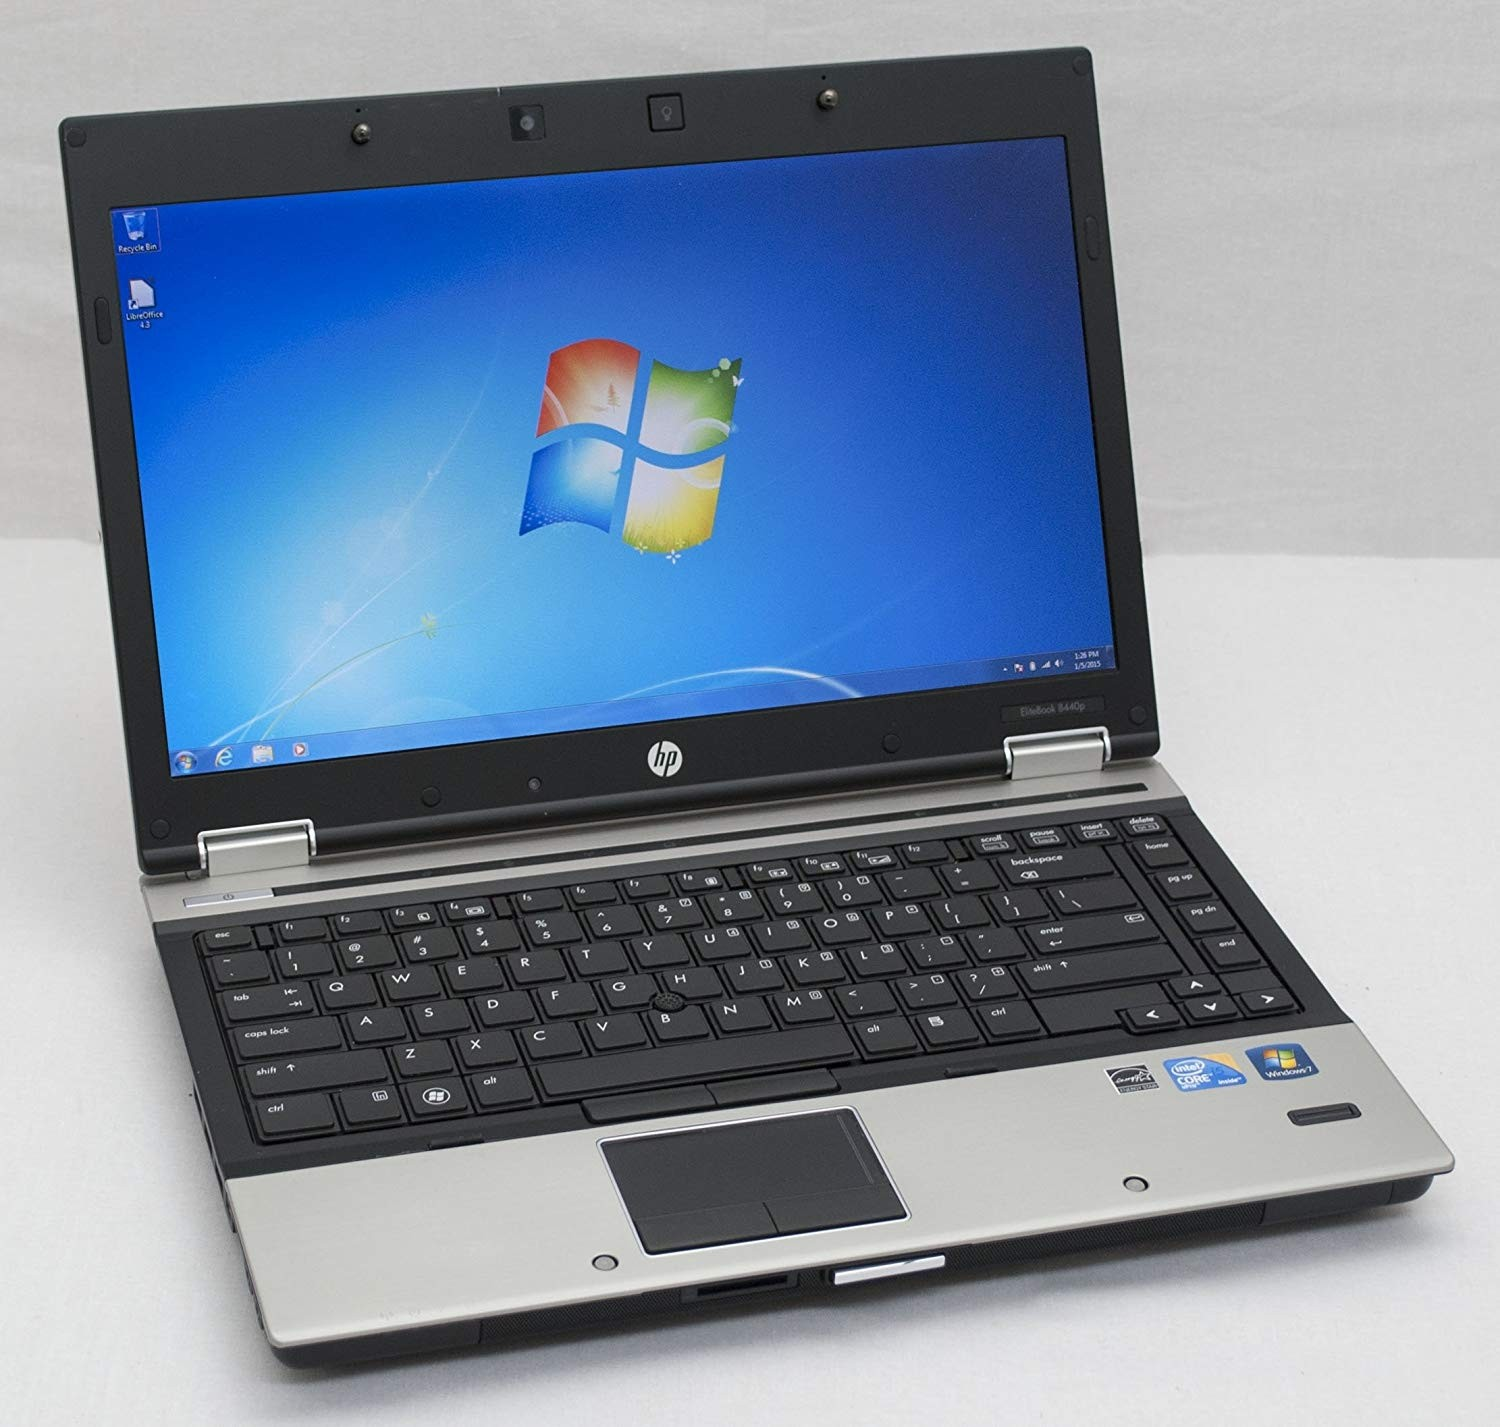 Refurbished laptops & desktops - Refurbished HP Elitebook 8440P (Core I5 1St Gen/4GB/320GB/Webcam/14''/DOS)